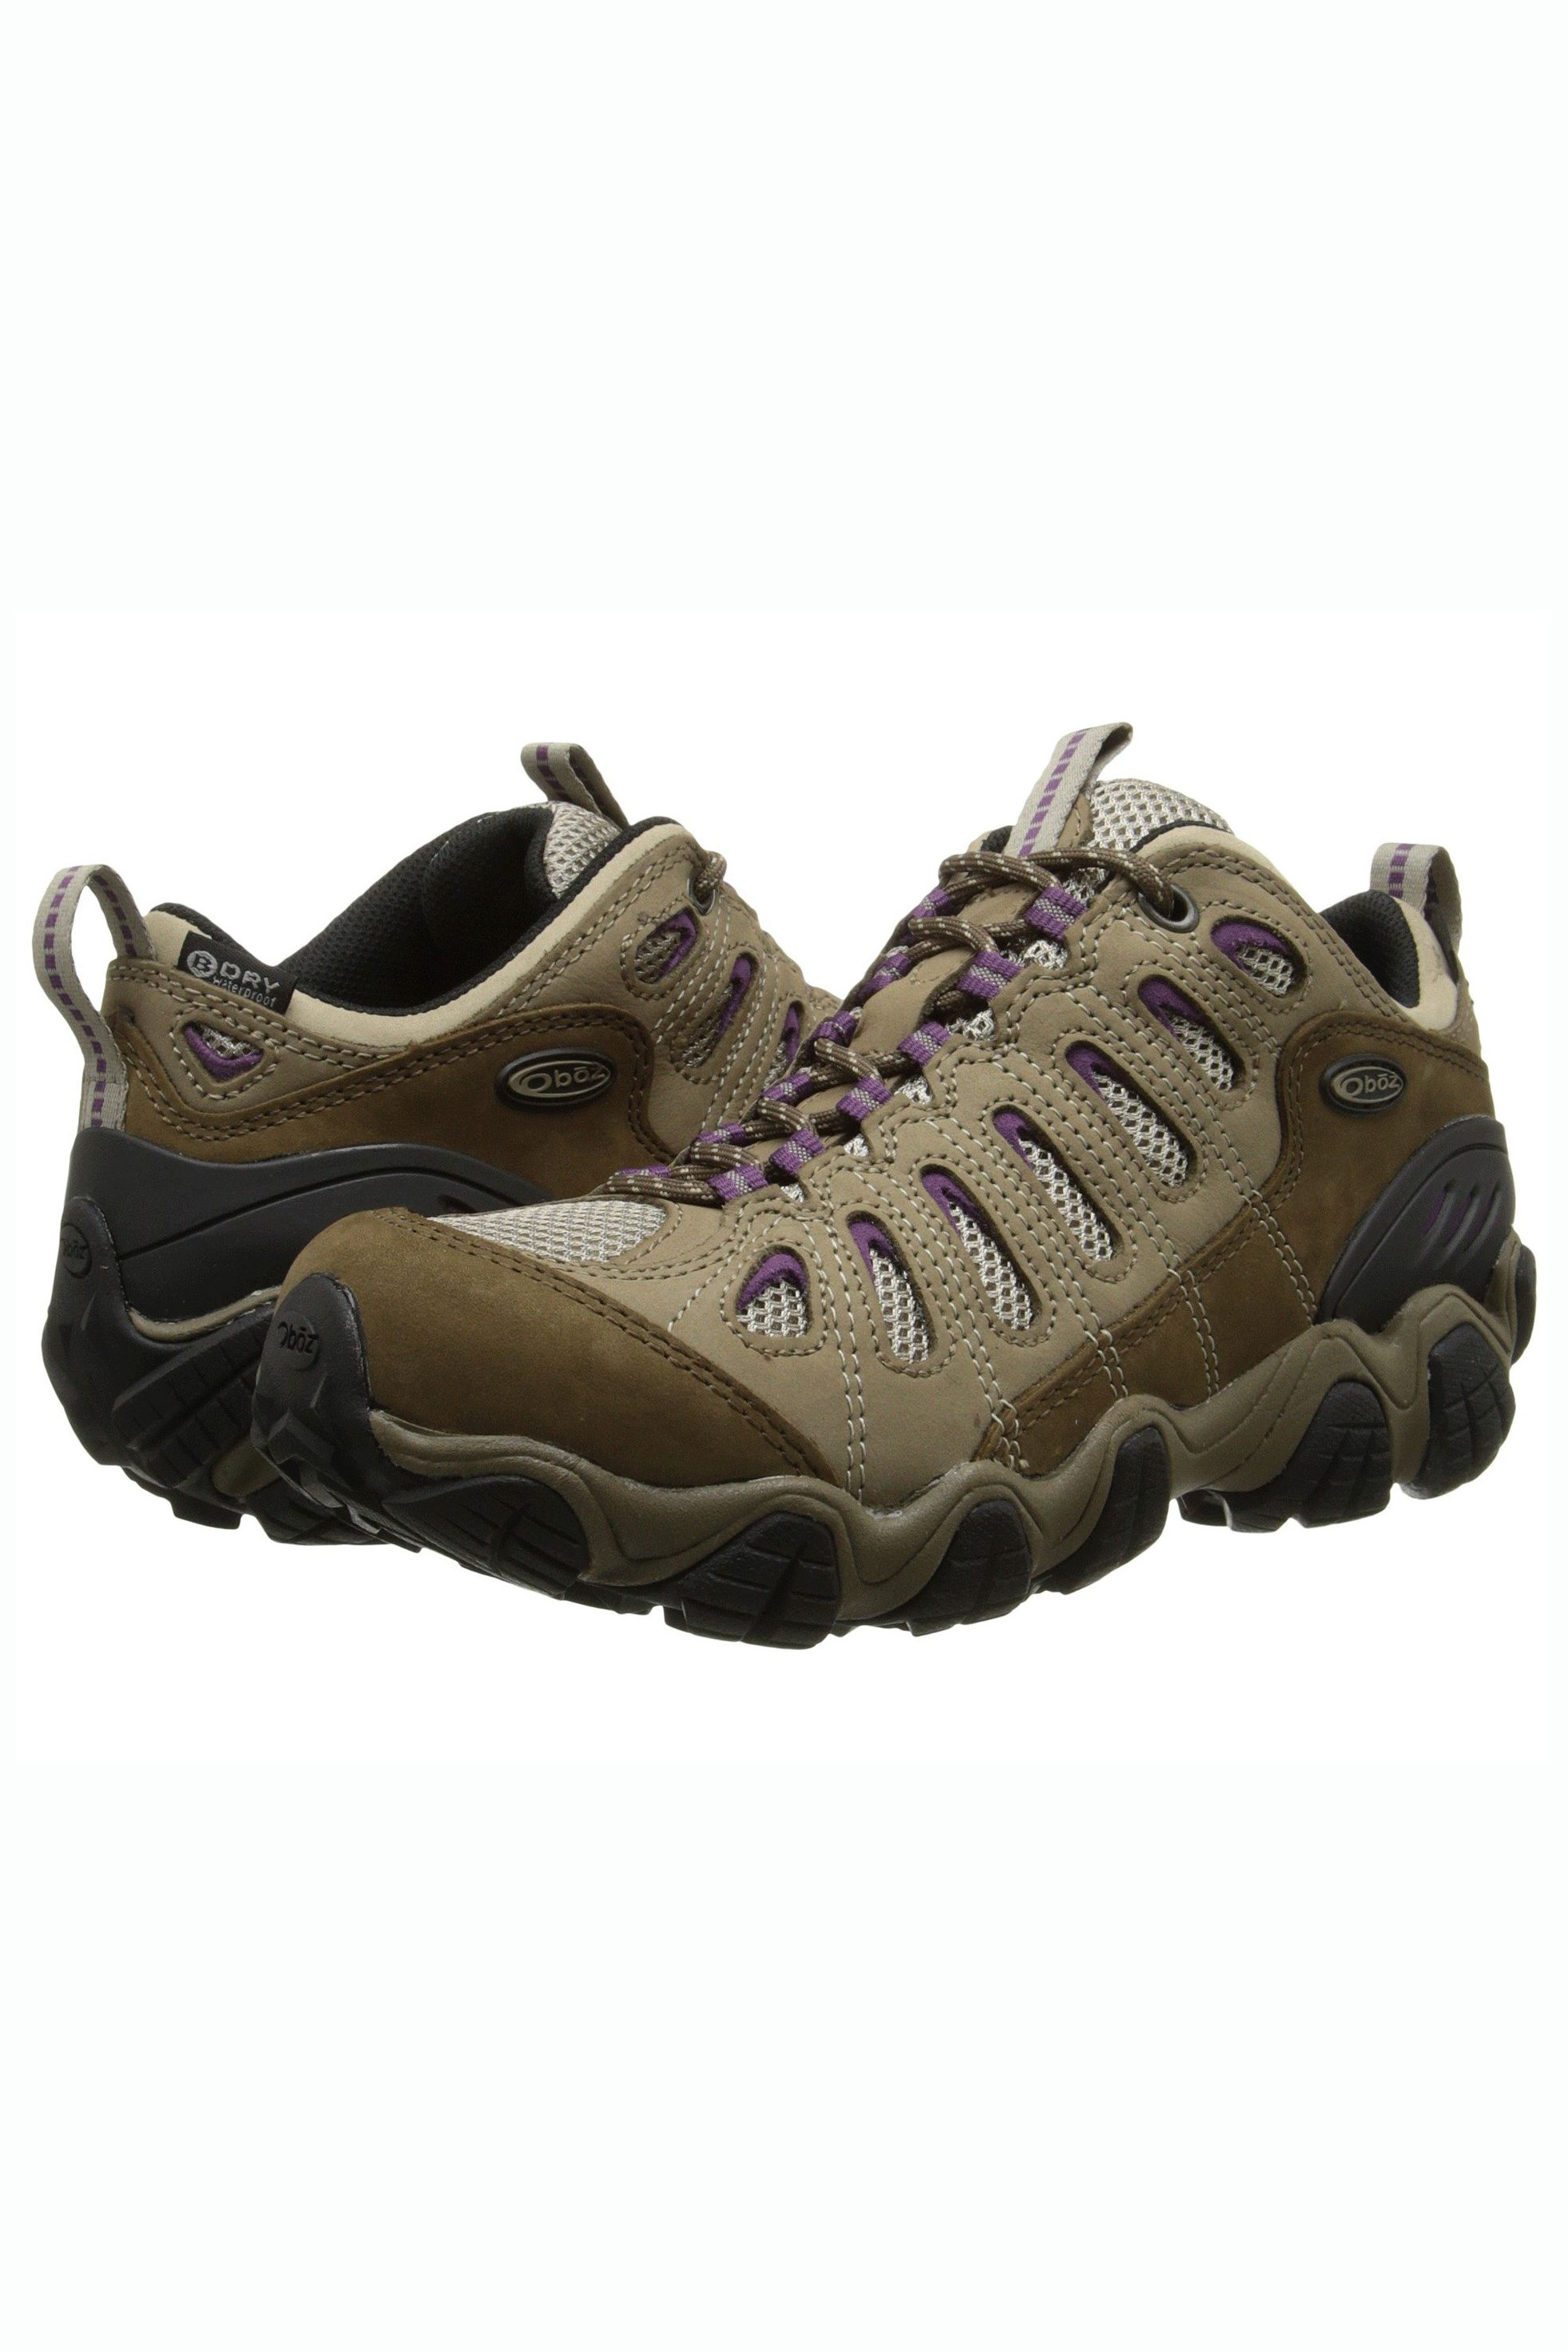 s overstock men comforter shoes product hiker today boots most hiking free xray torres clothing mens comfortable shipping